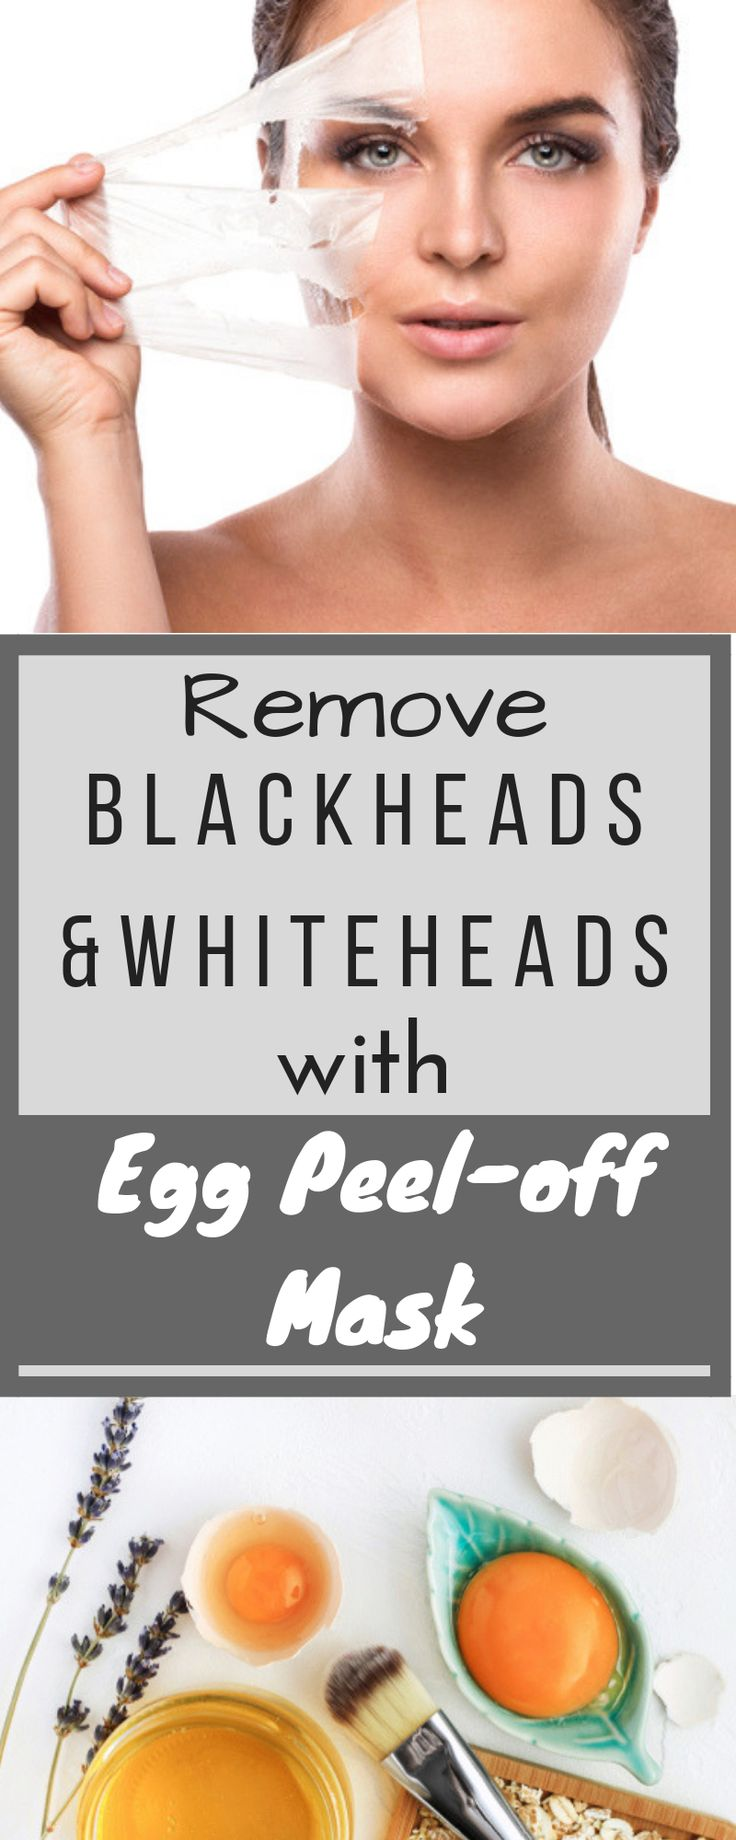 Peel off mask to get rid of blackheads